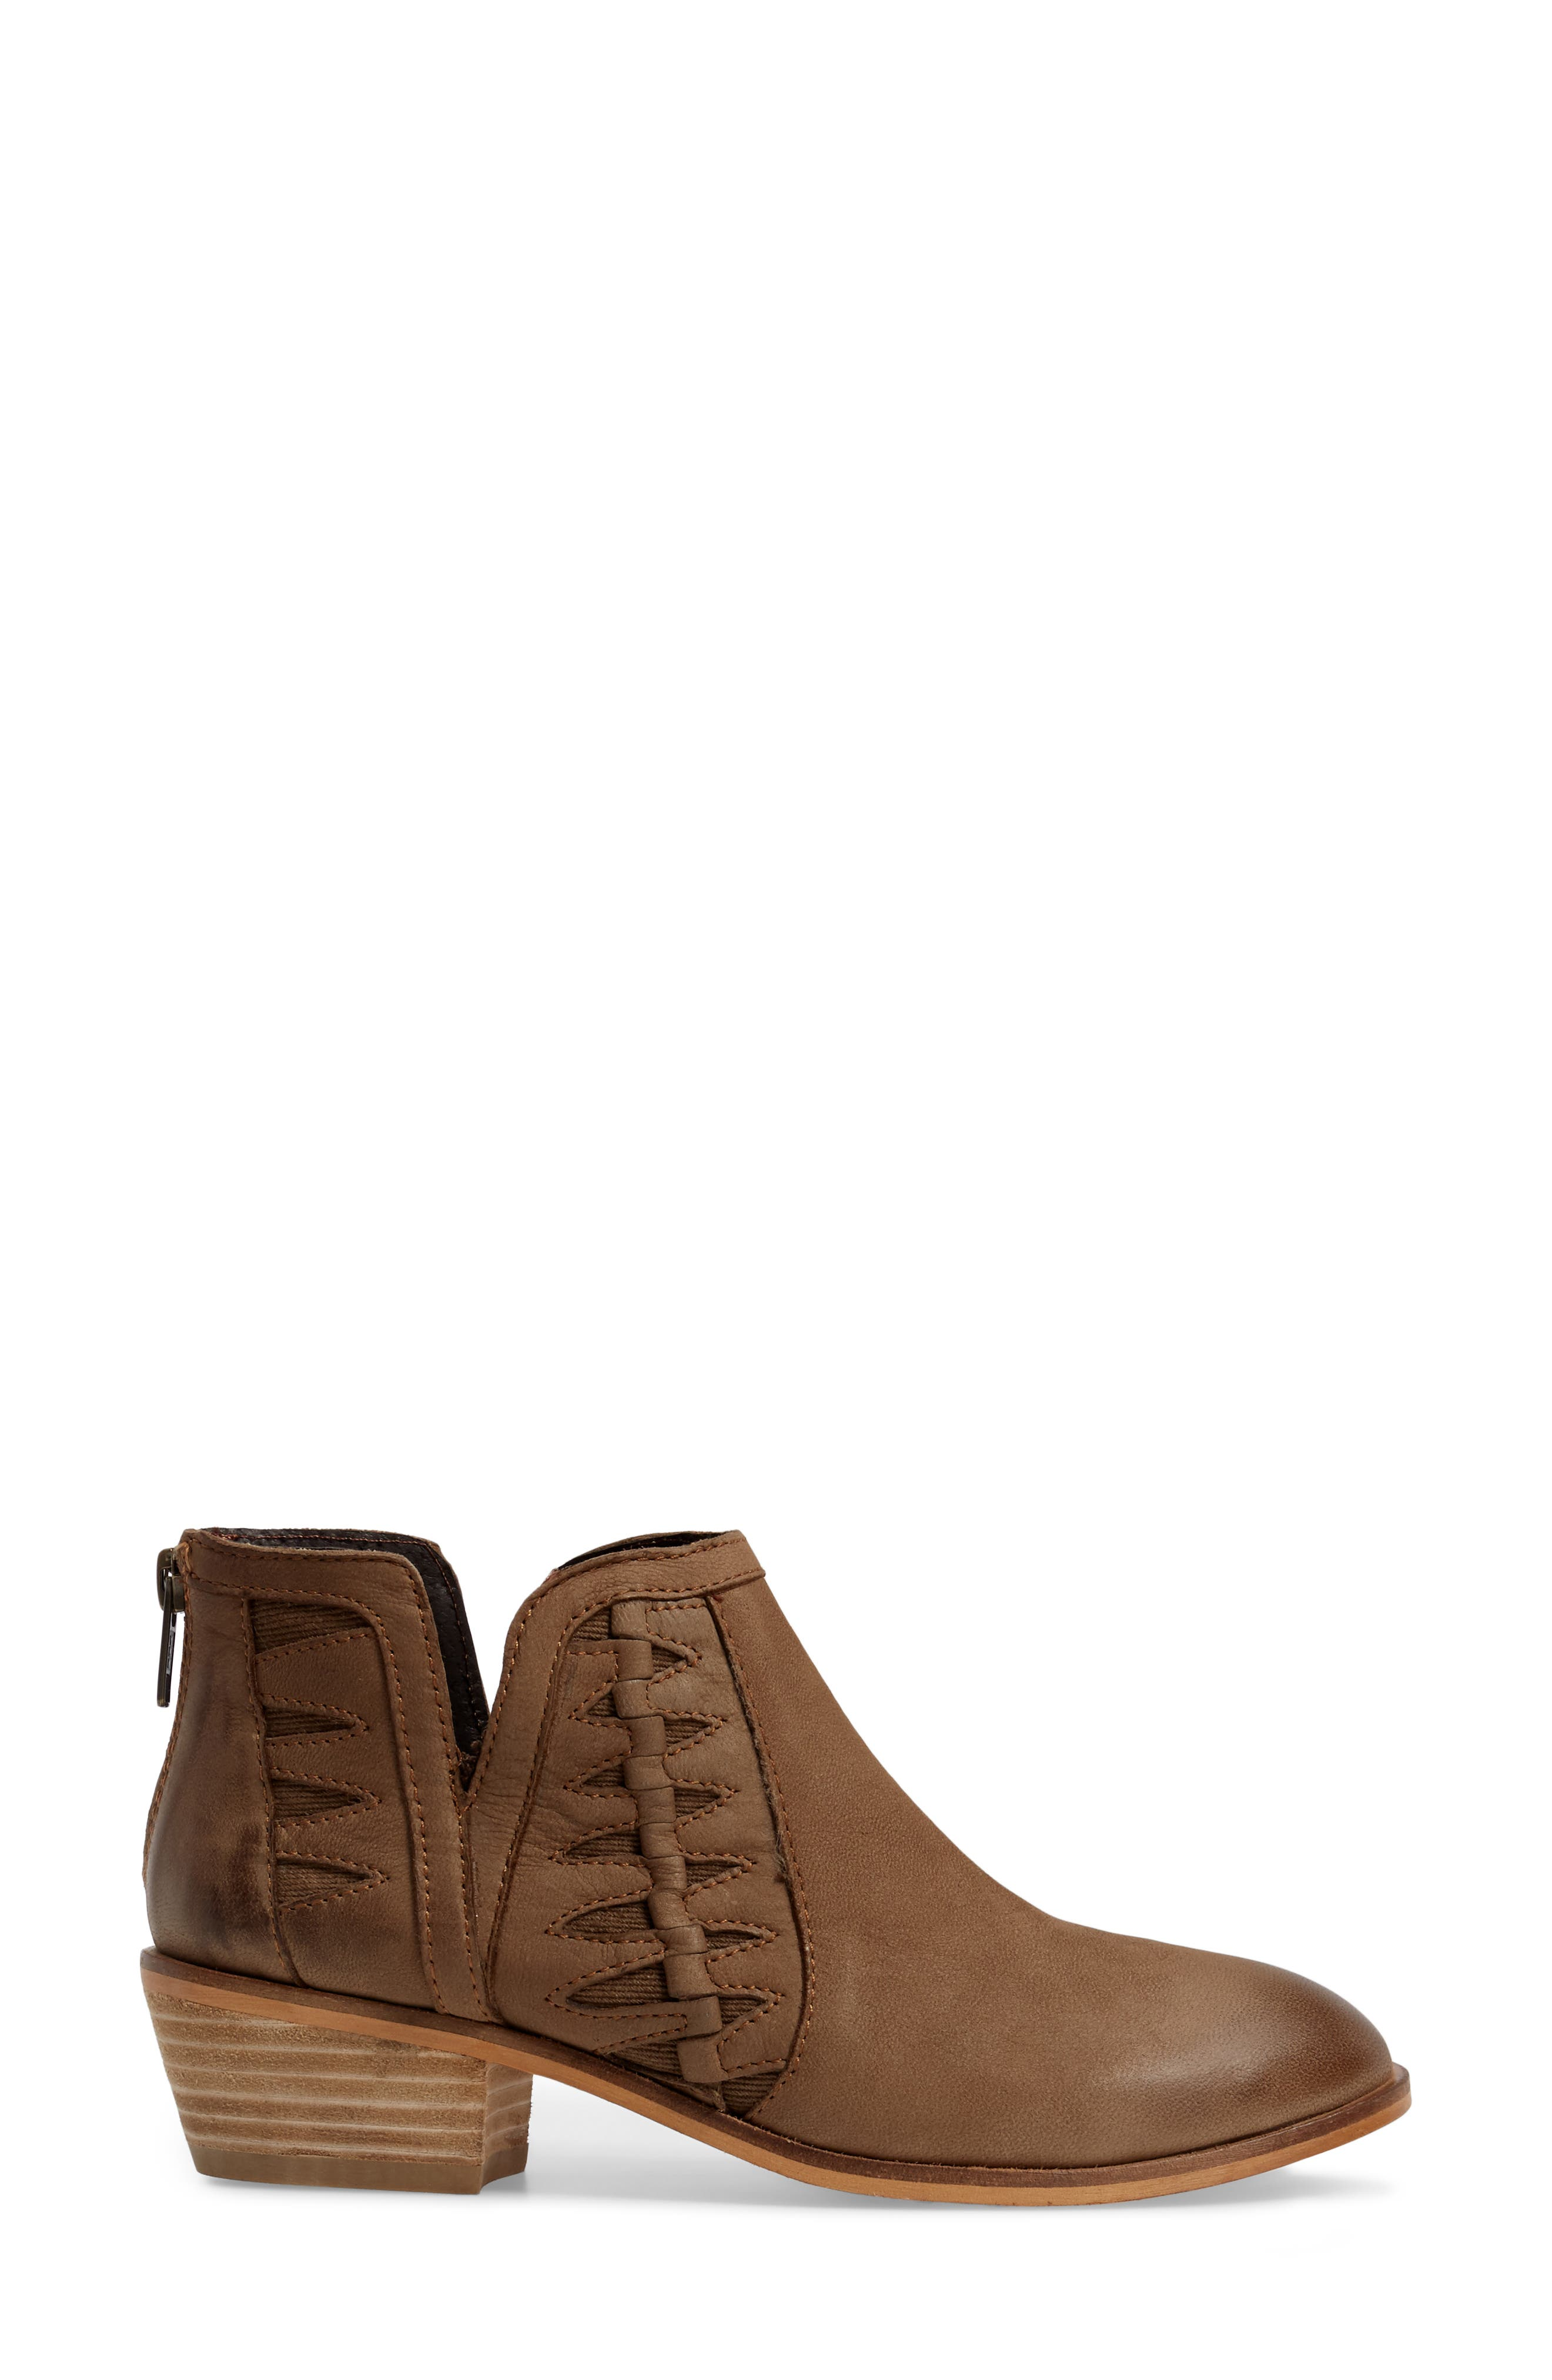 Yuma Bootie,                             Alternate thumbnail 3, color,                             Cognac Washed Nubuck Leather